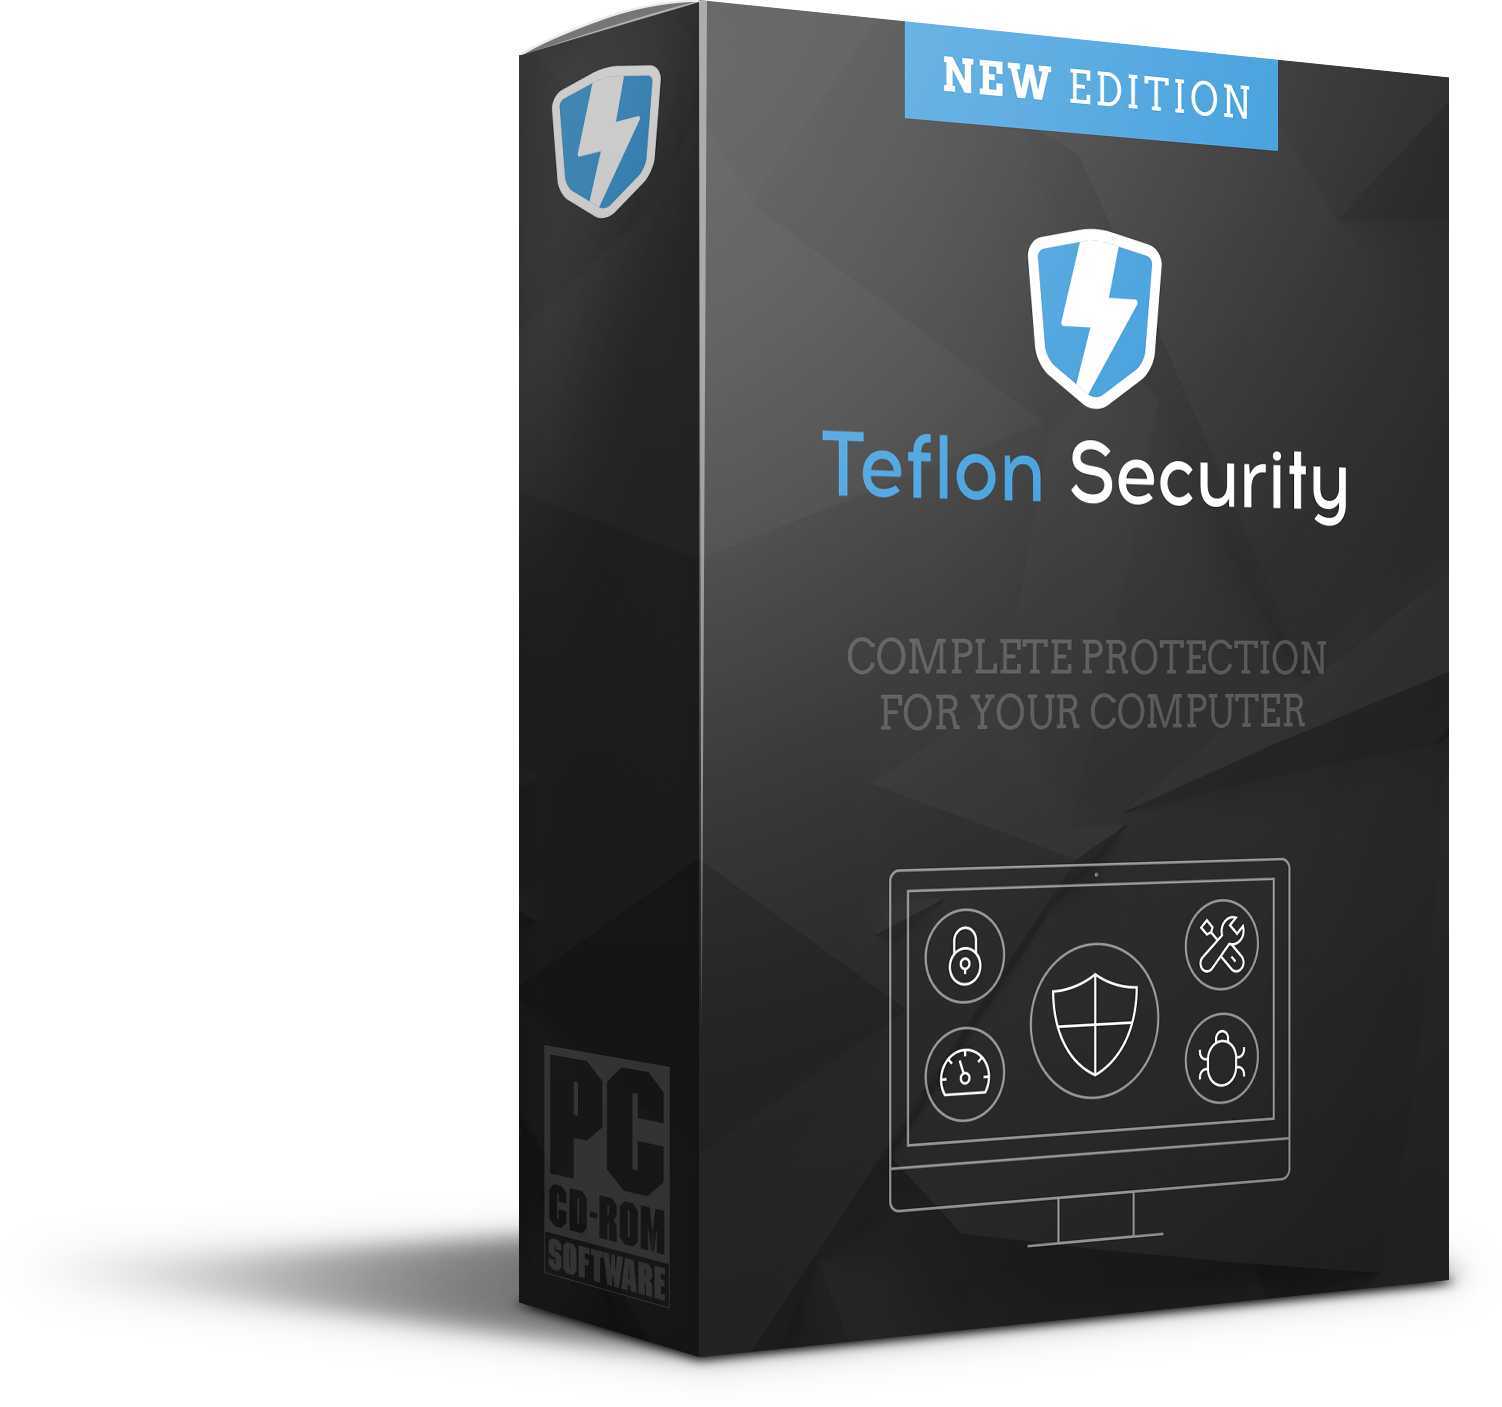 Teflon Security Review